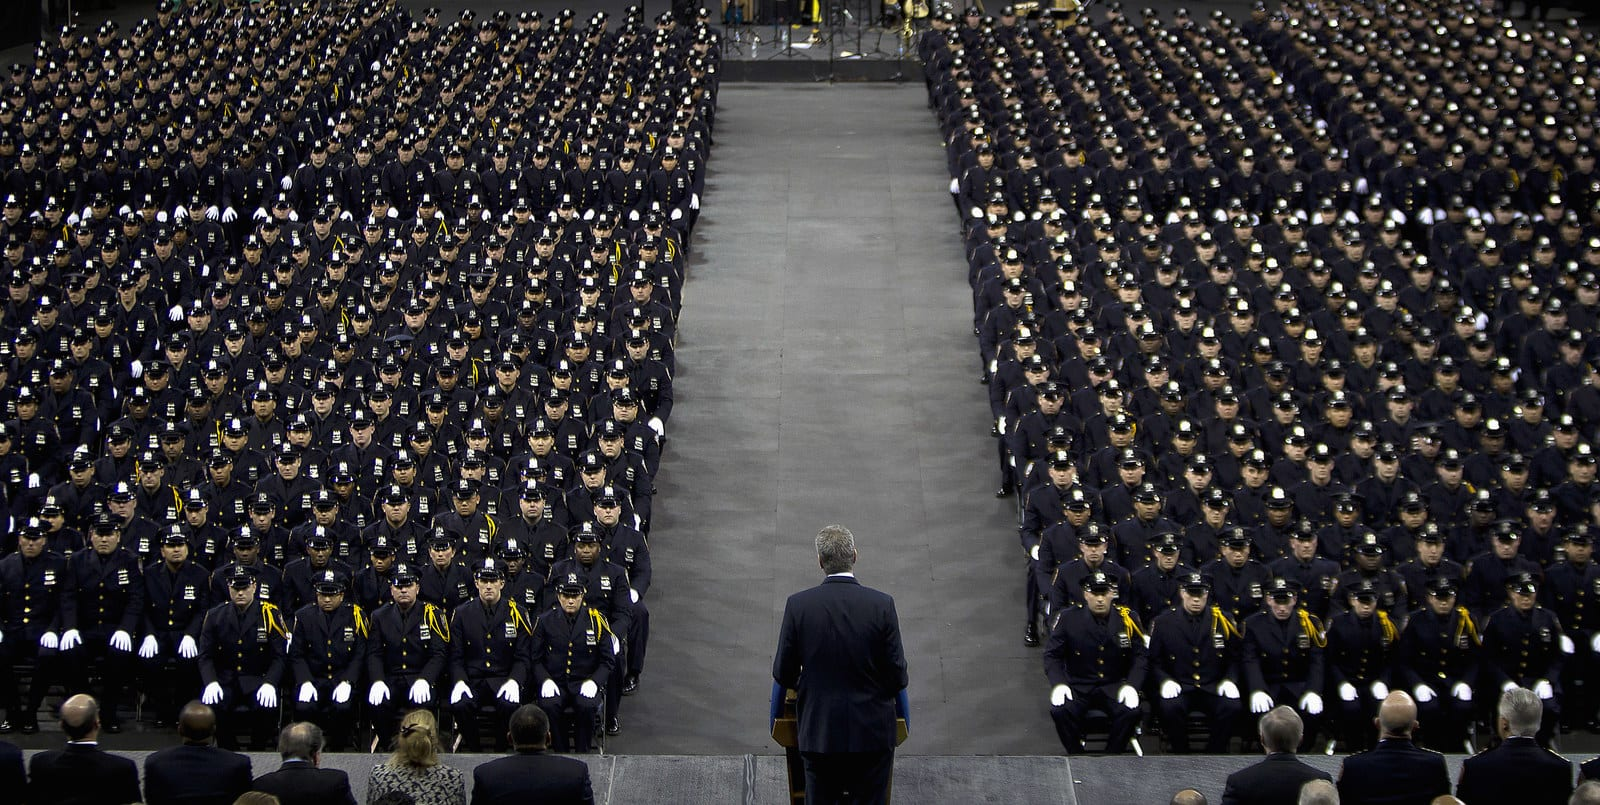 Mayor Bill de Blasio speaks to the New York City Police Academy graduating class, Dec. 29, 2014. - Carlo Allegri / Reuters